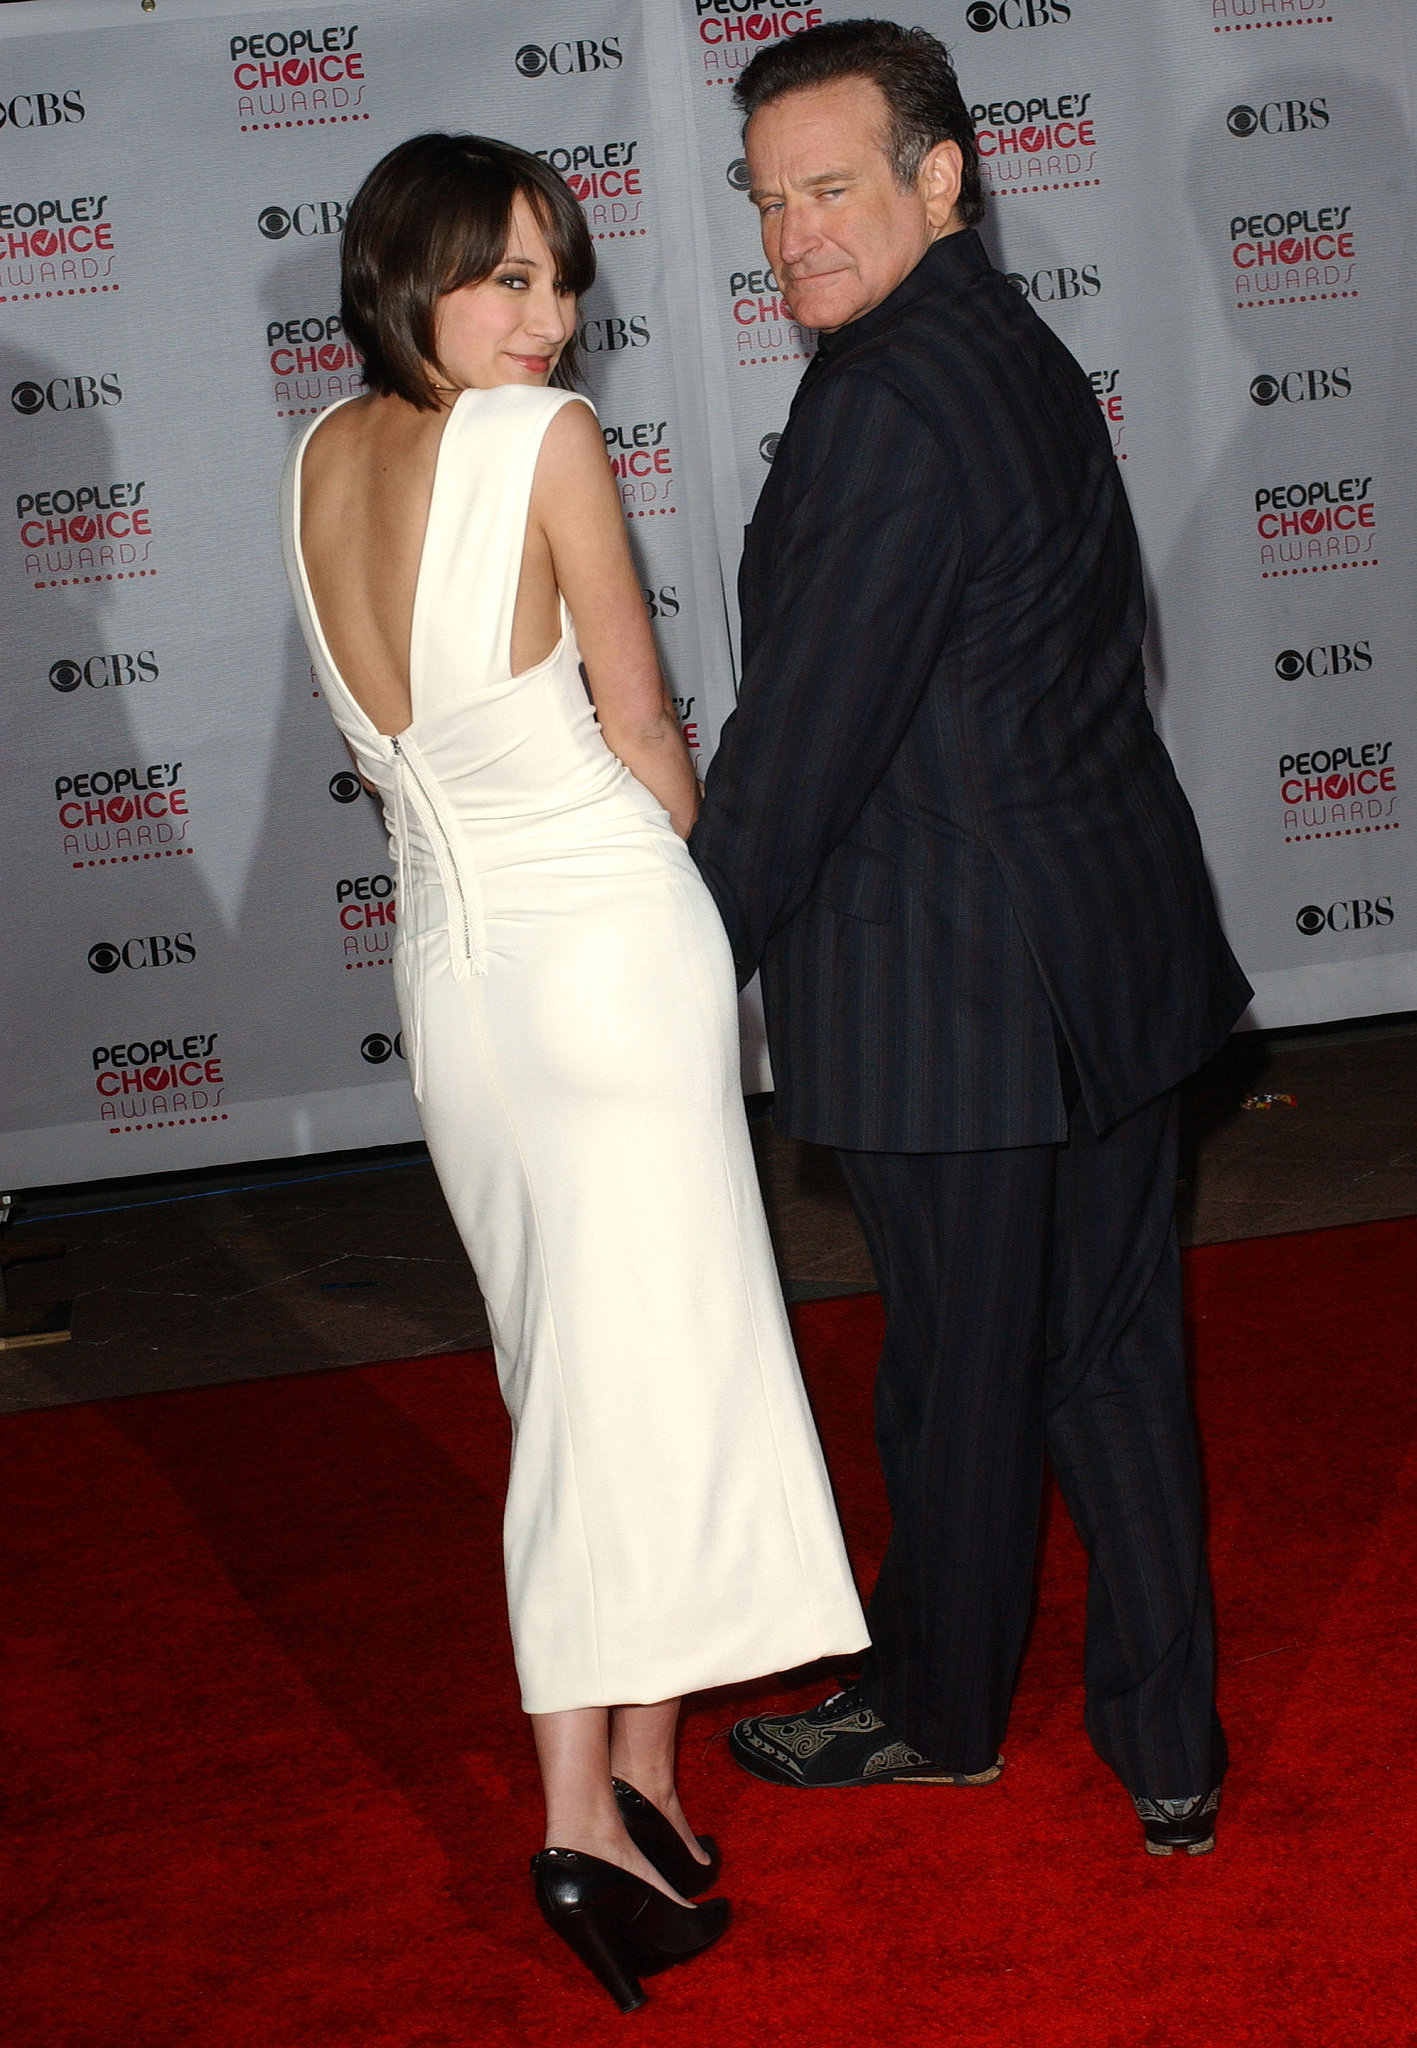 He and Zelda struck a silly pose at the People's Choice Awards in January 2007.